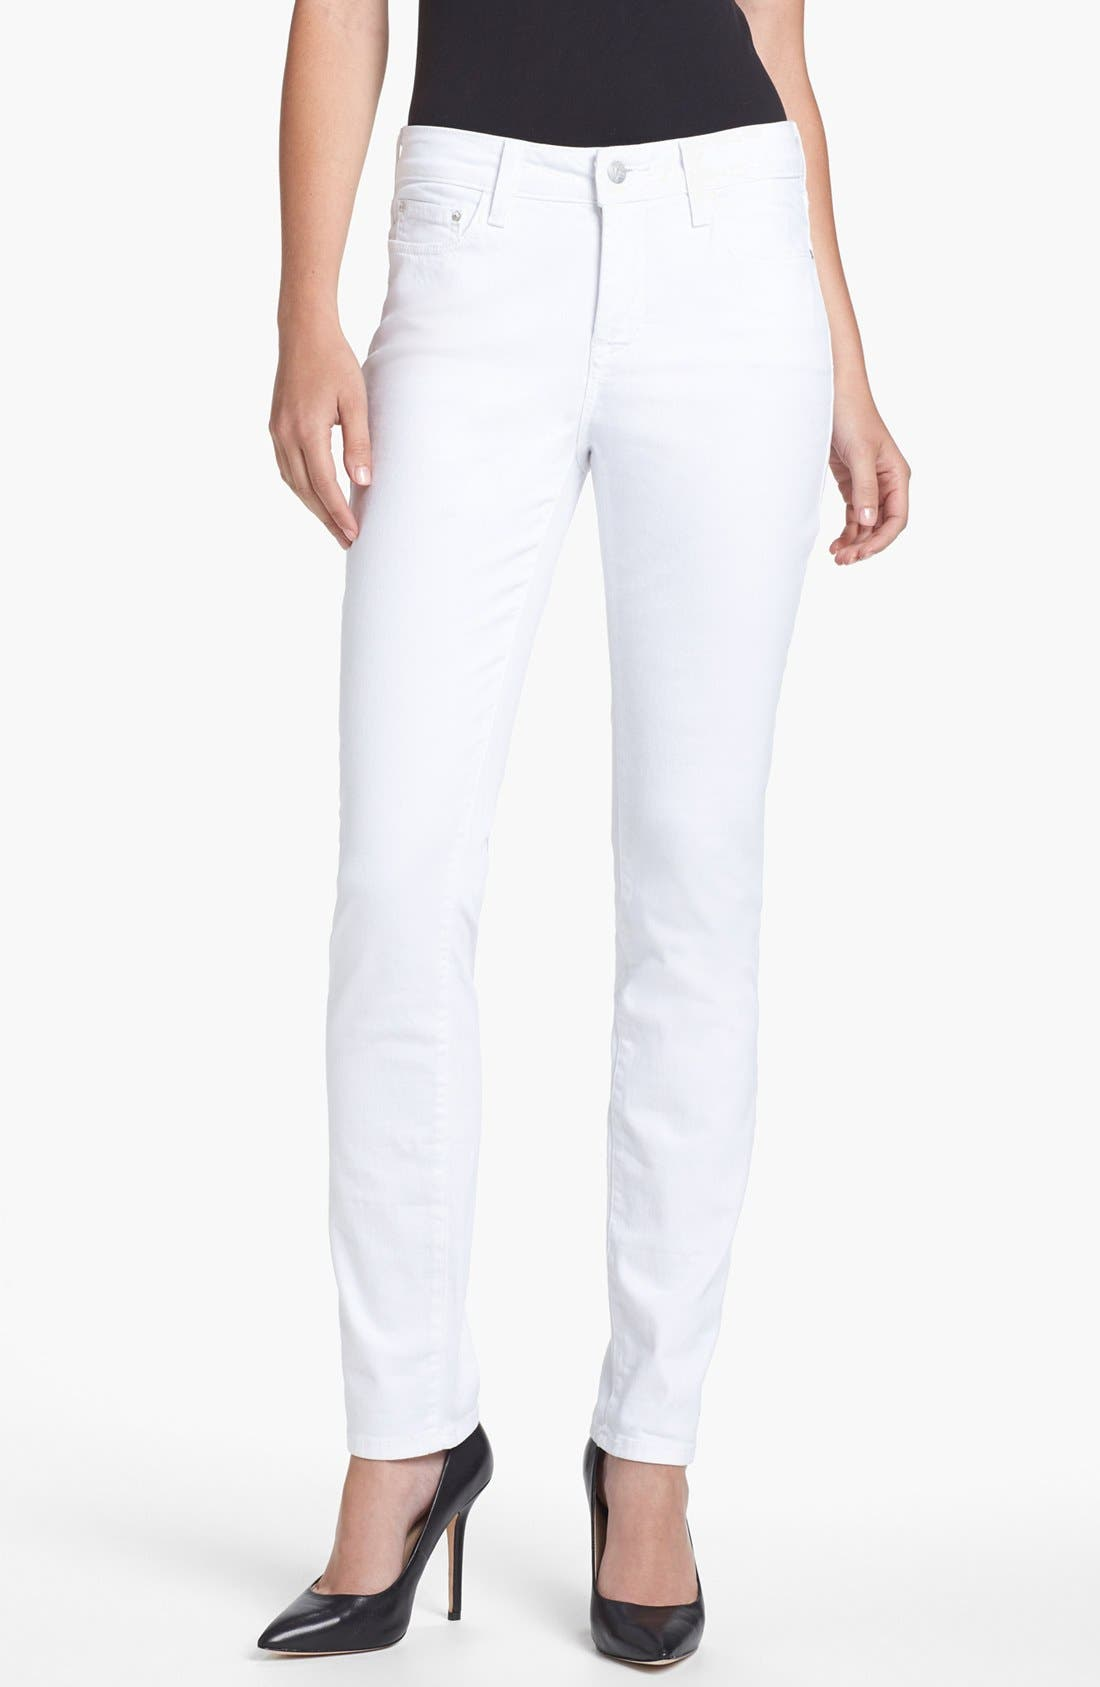 Main Image - NYDJ 'Jade' Colored Stretch Skinny Jeans